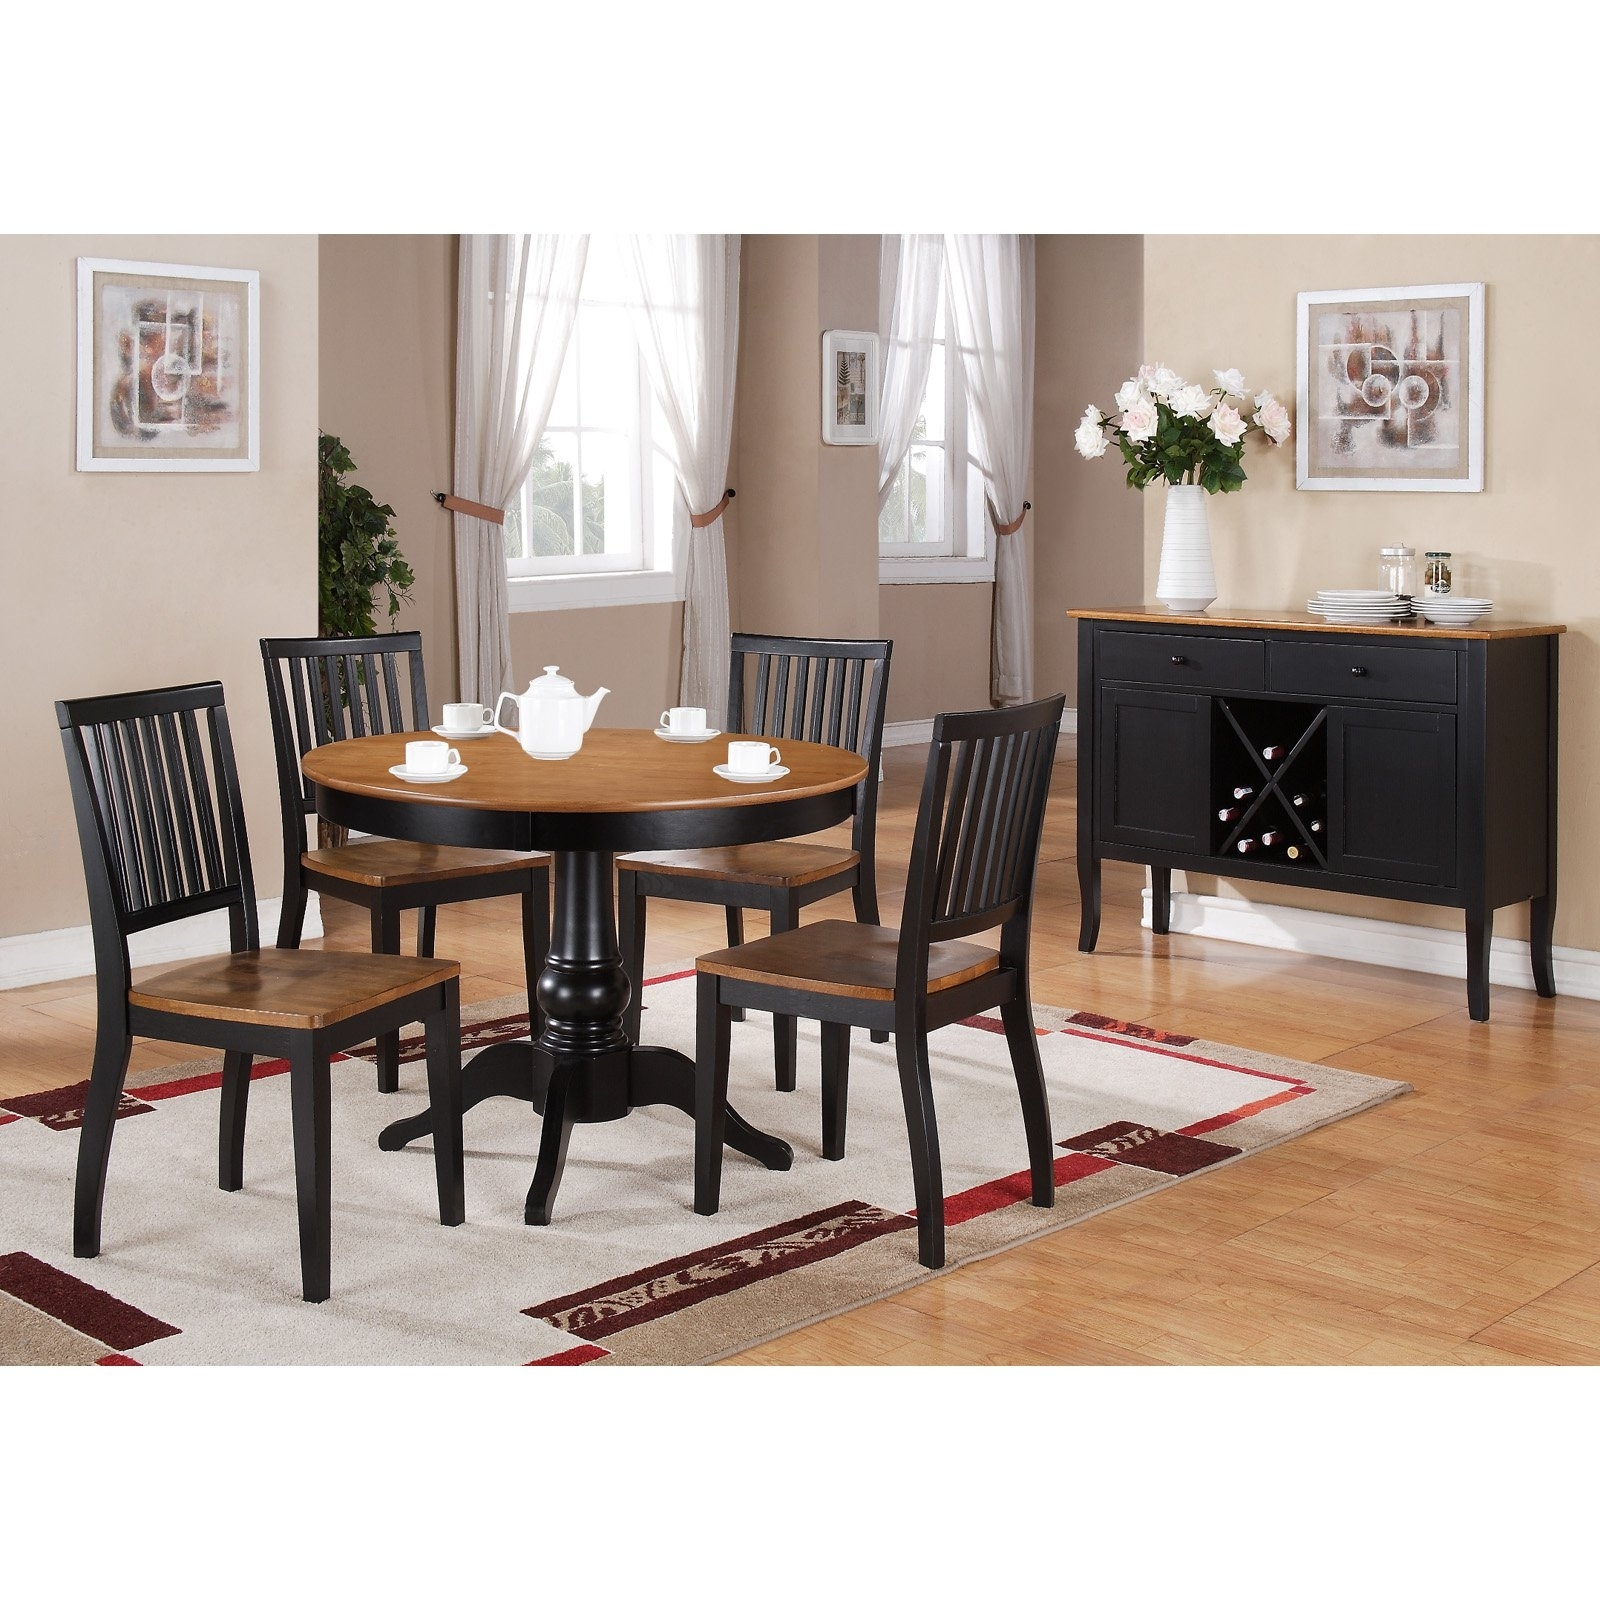 Steve Silver 5 Piece Candice Two Tone Round Pedestal Dining Table For Most Up To Date Candice Ii Round Dining Tables (View 16 of 20)